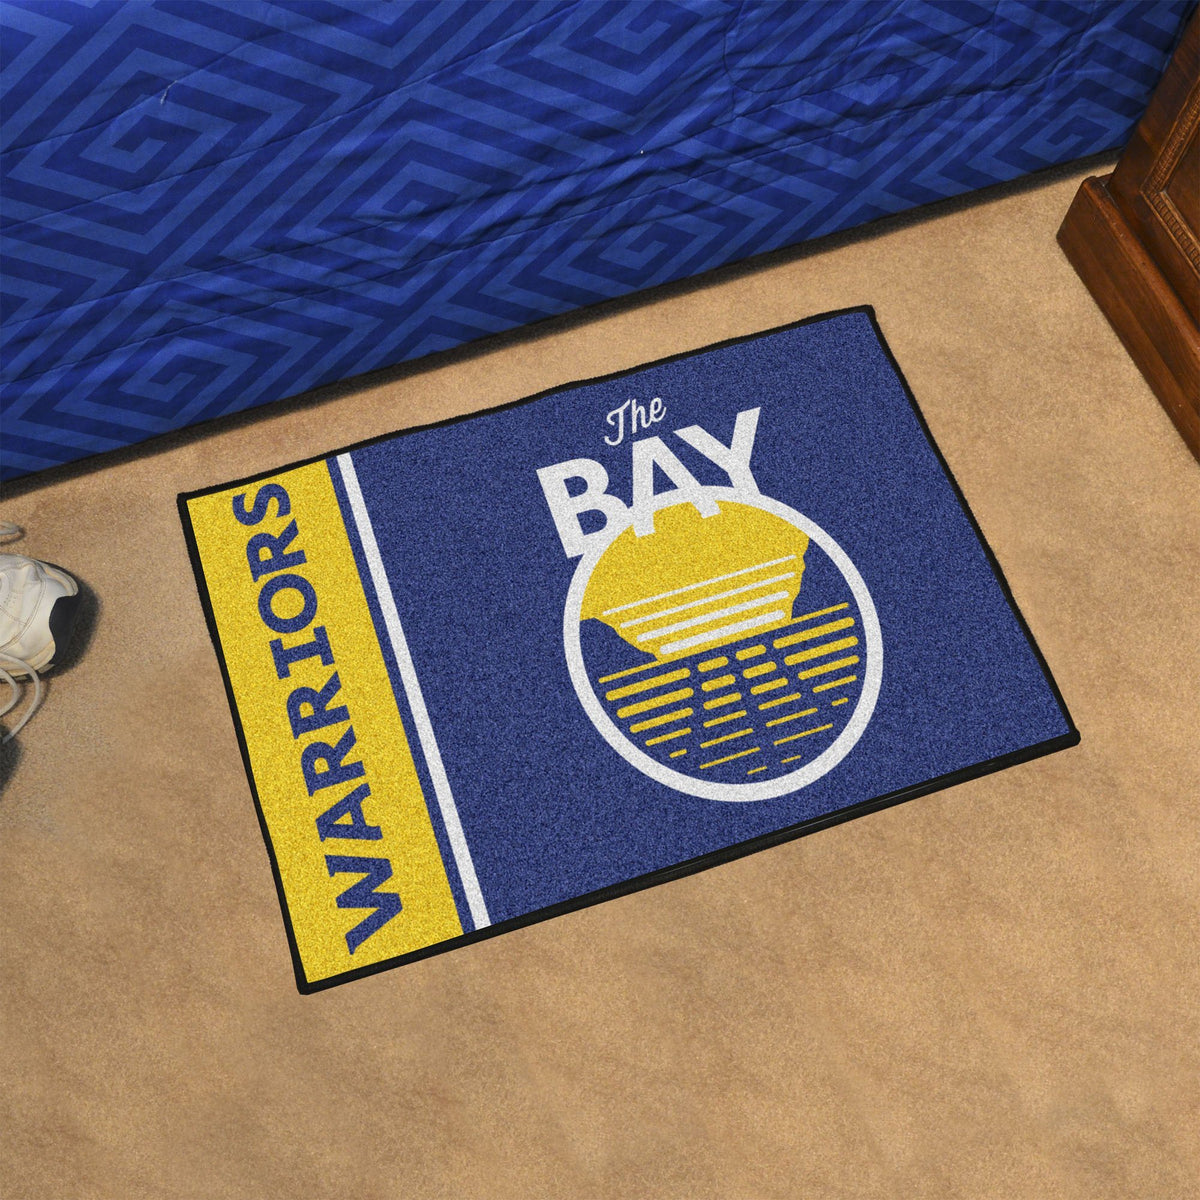 NBA - Uniform Starter Mat NBA Mats, Rectangular Mats, Uniform Starter Mat, NBA, Home Fan Mats Golden State Warriors